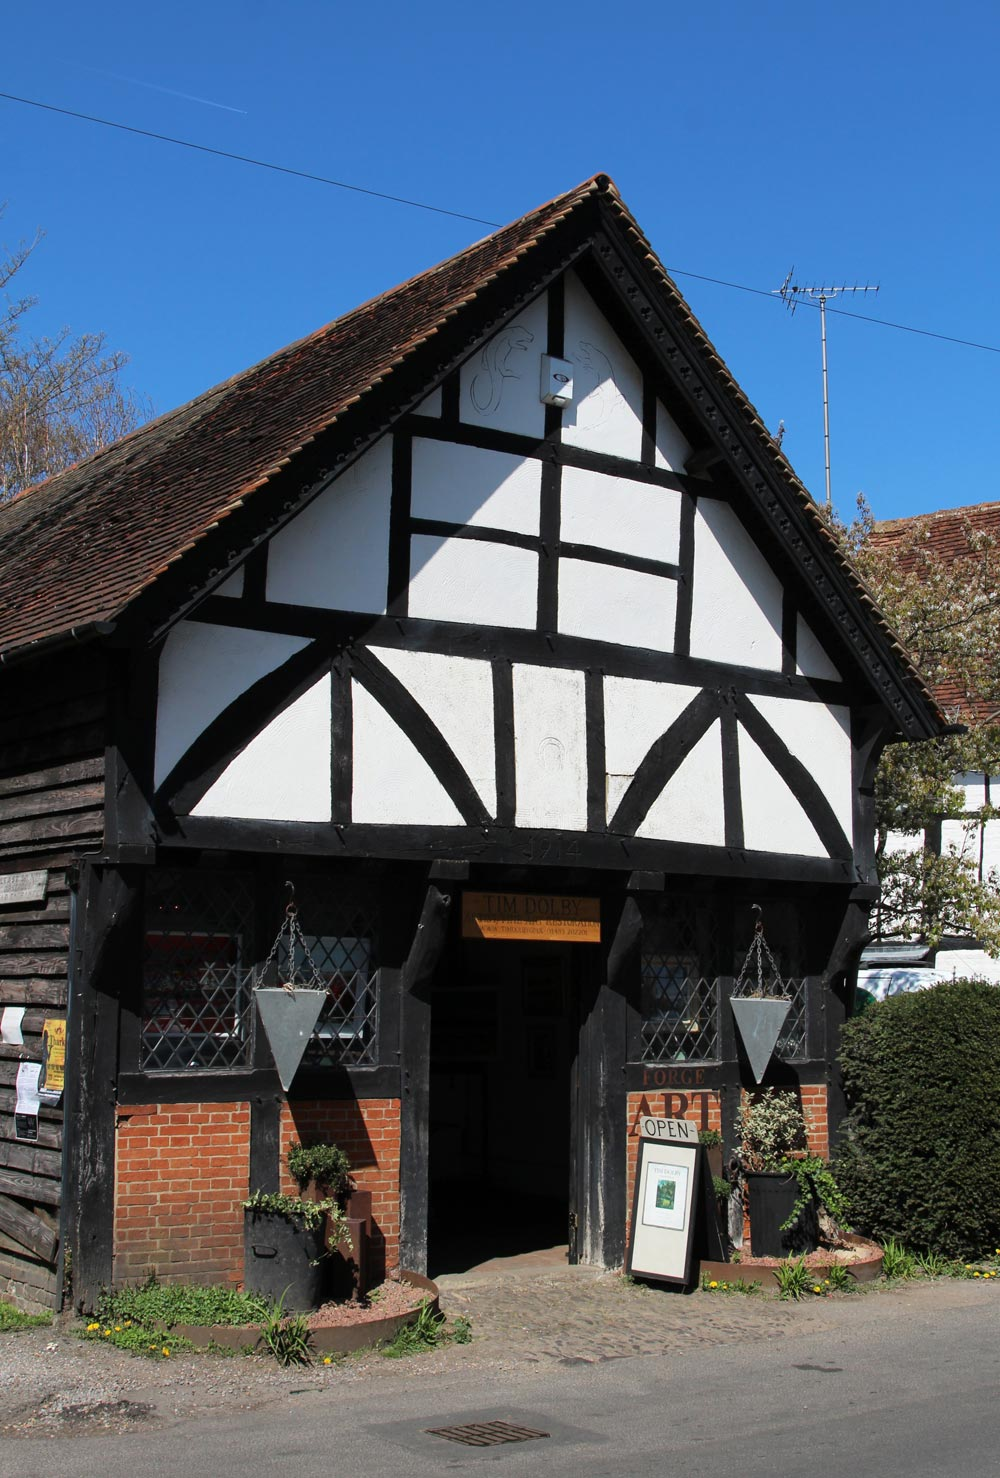 The Old Forge, Middle Street, Shere